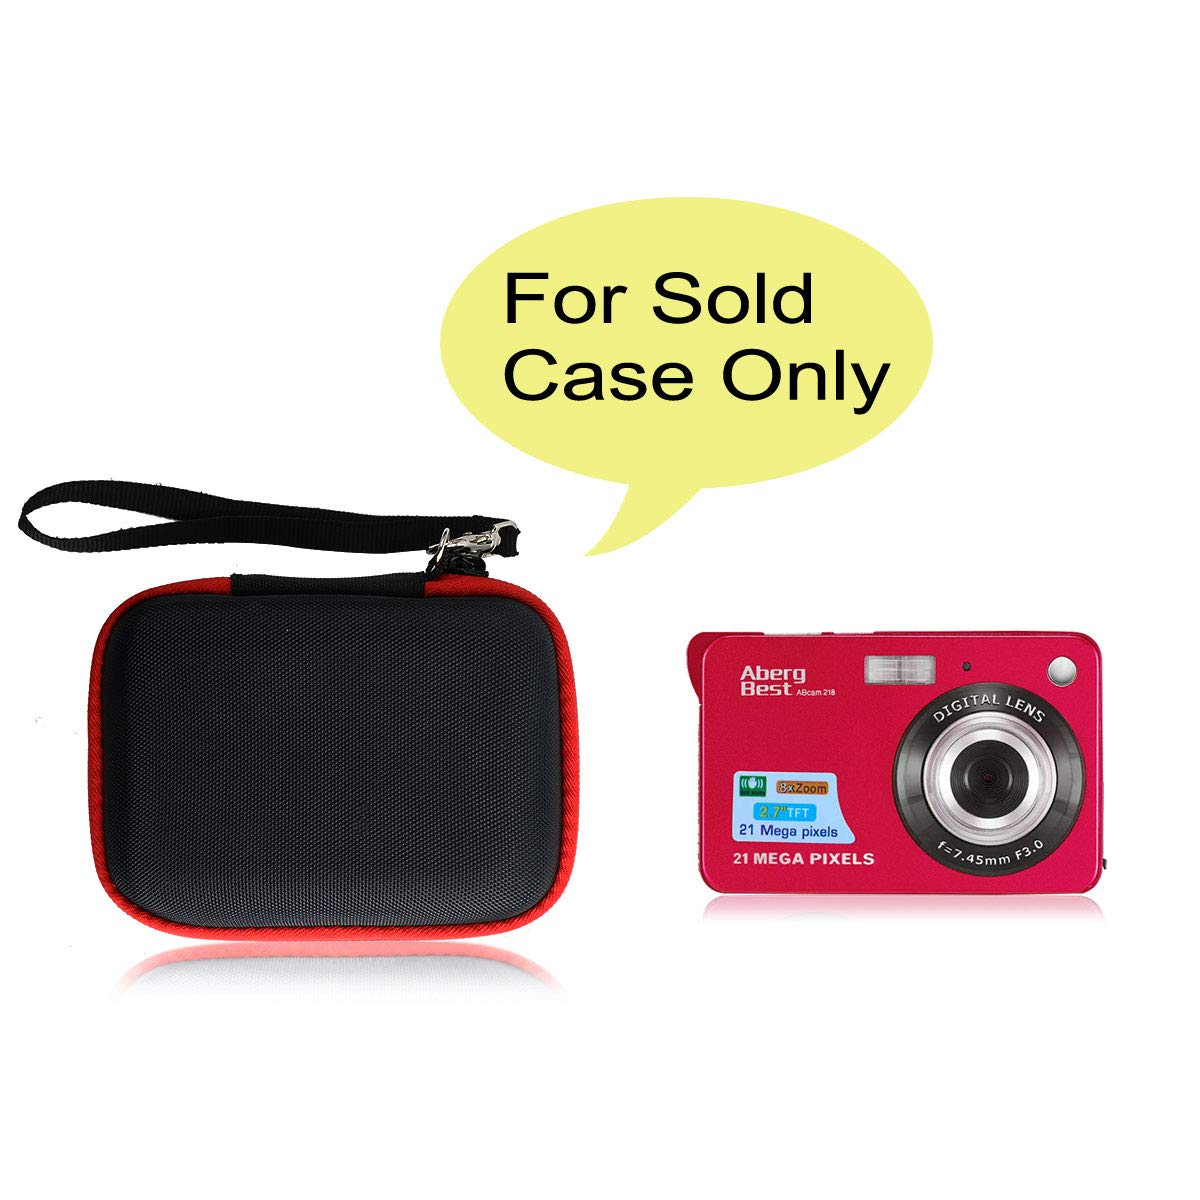 Co2crea Hard Travel Case Replacement For Abergbest 21 Mega Pixels 2 7 Lcd Rechargeable Hd Digital Camera Video Camera Digital Students Cameras Black Case Inside Red Amazon Sg Electronics